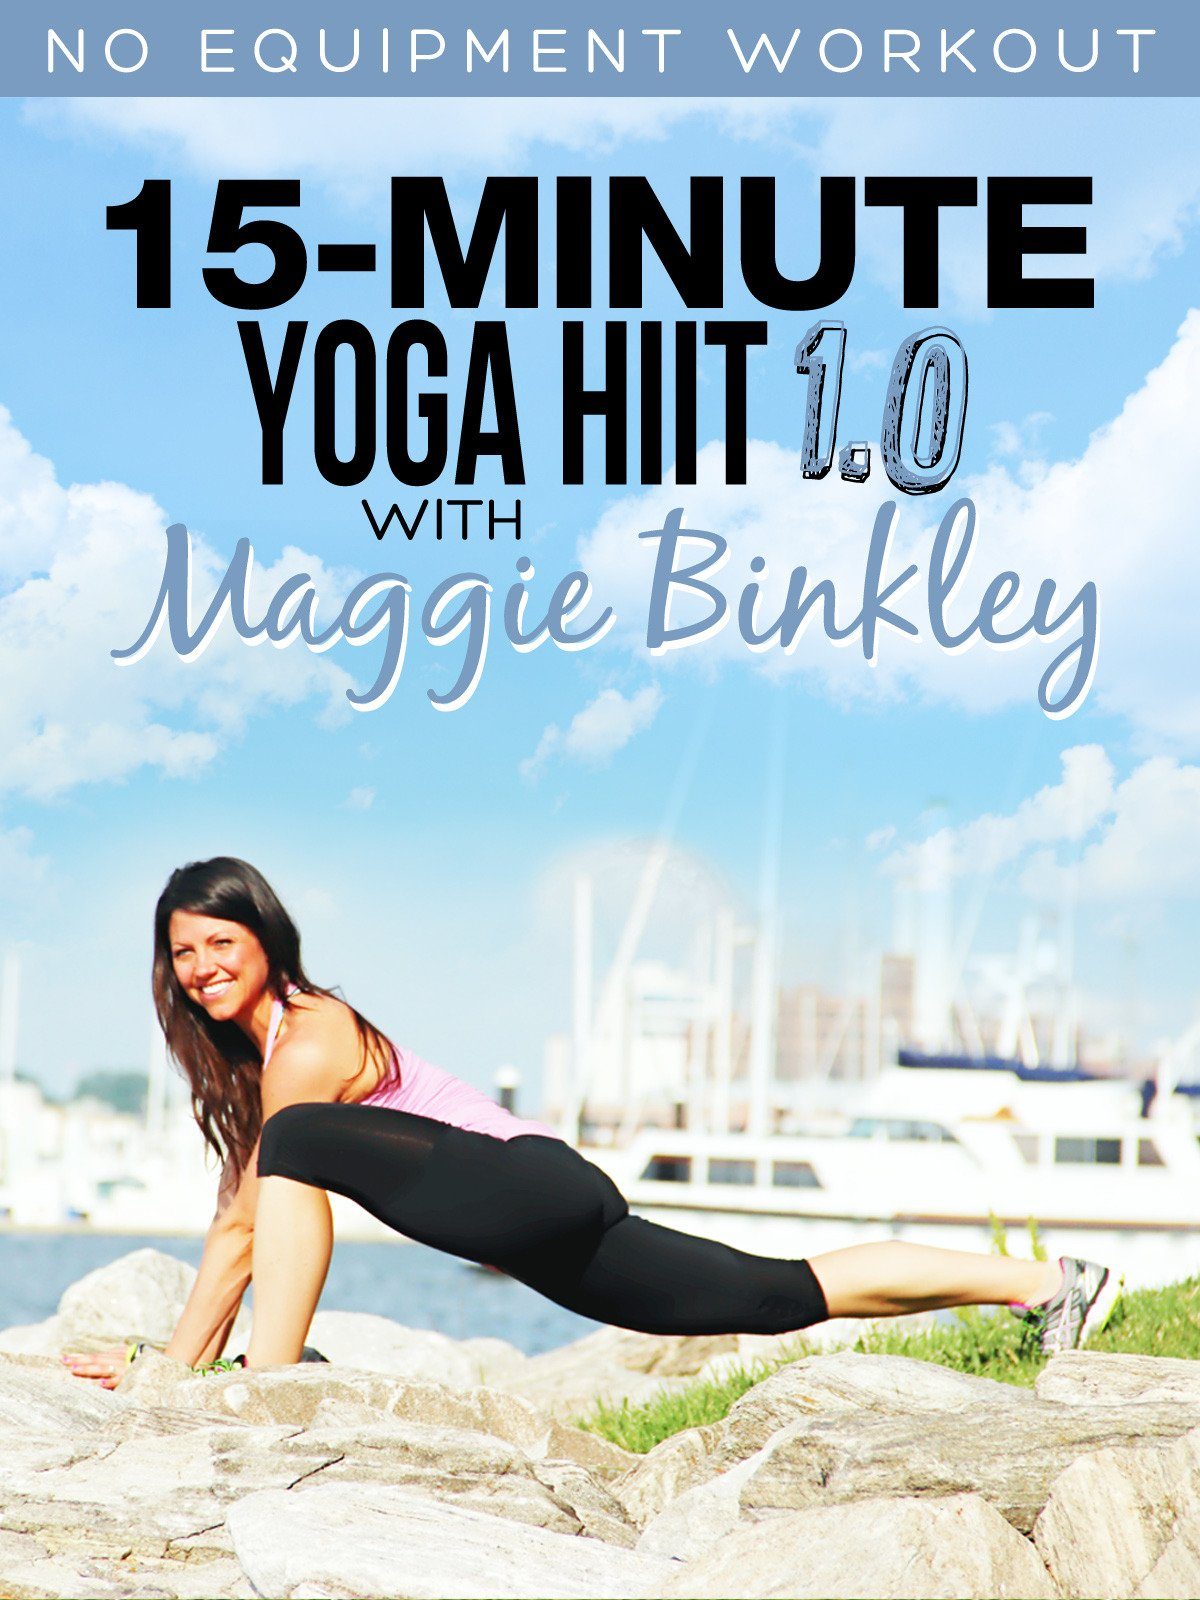 15-Minute Yoga HIIT 1.0 Workout